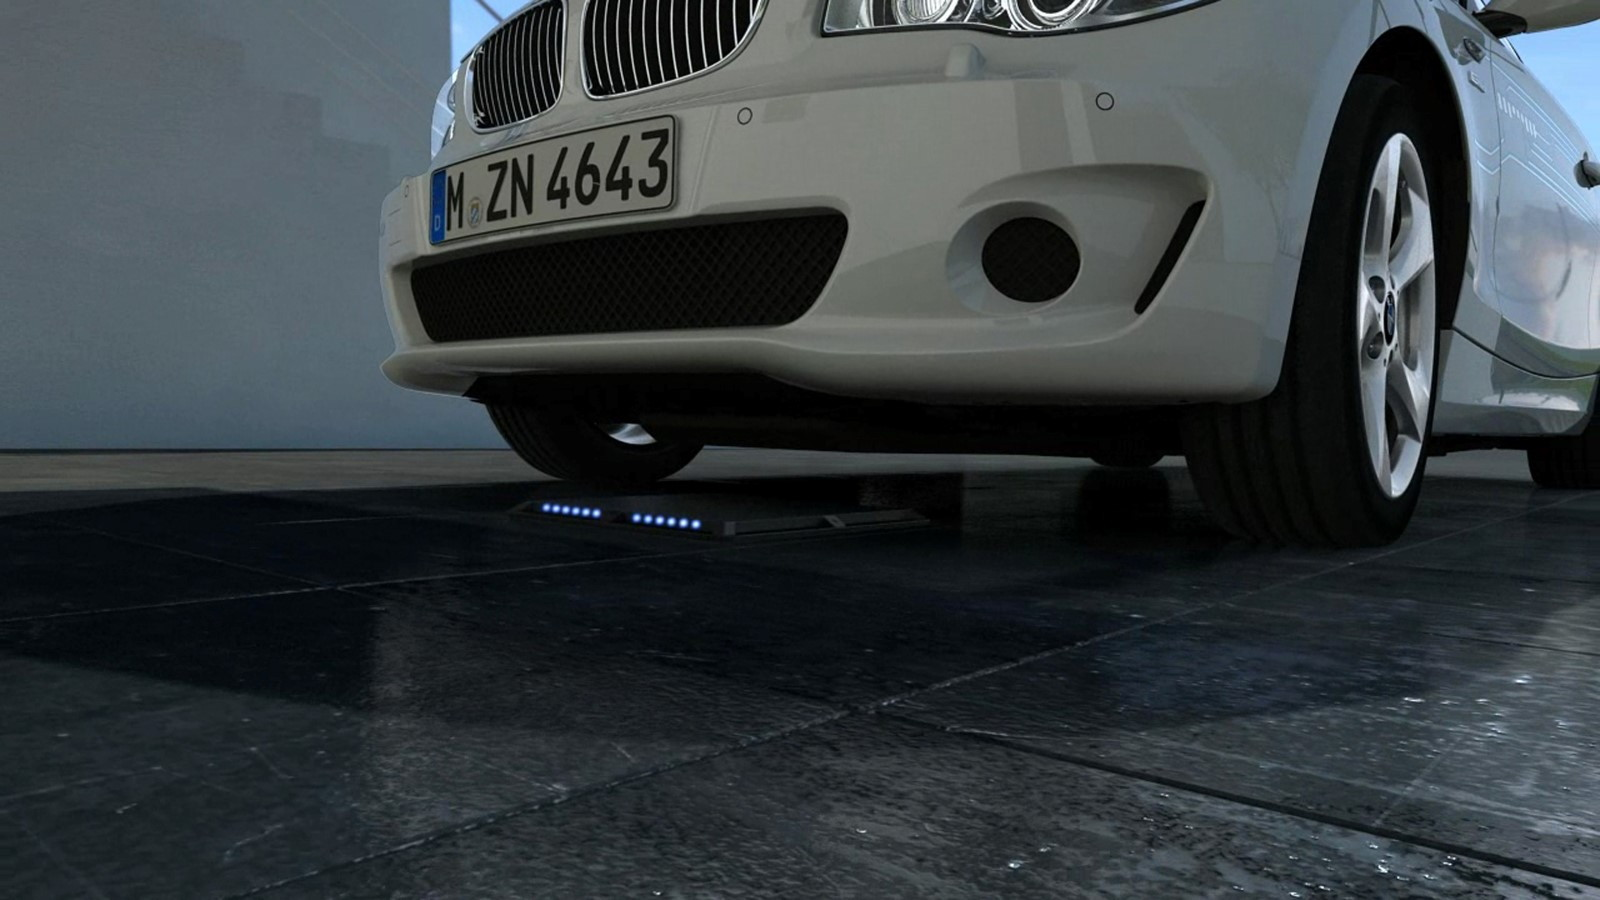 BMW, Mercedes-Benz working on wireless charging